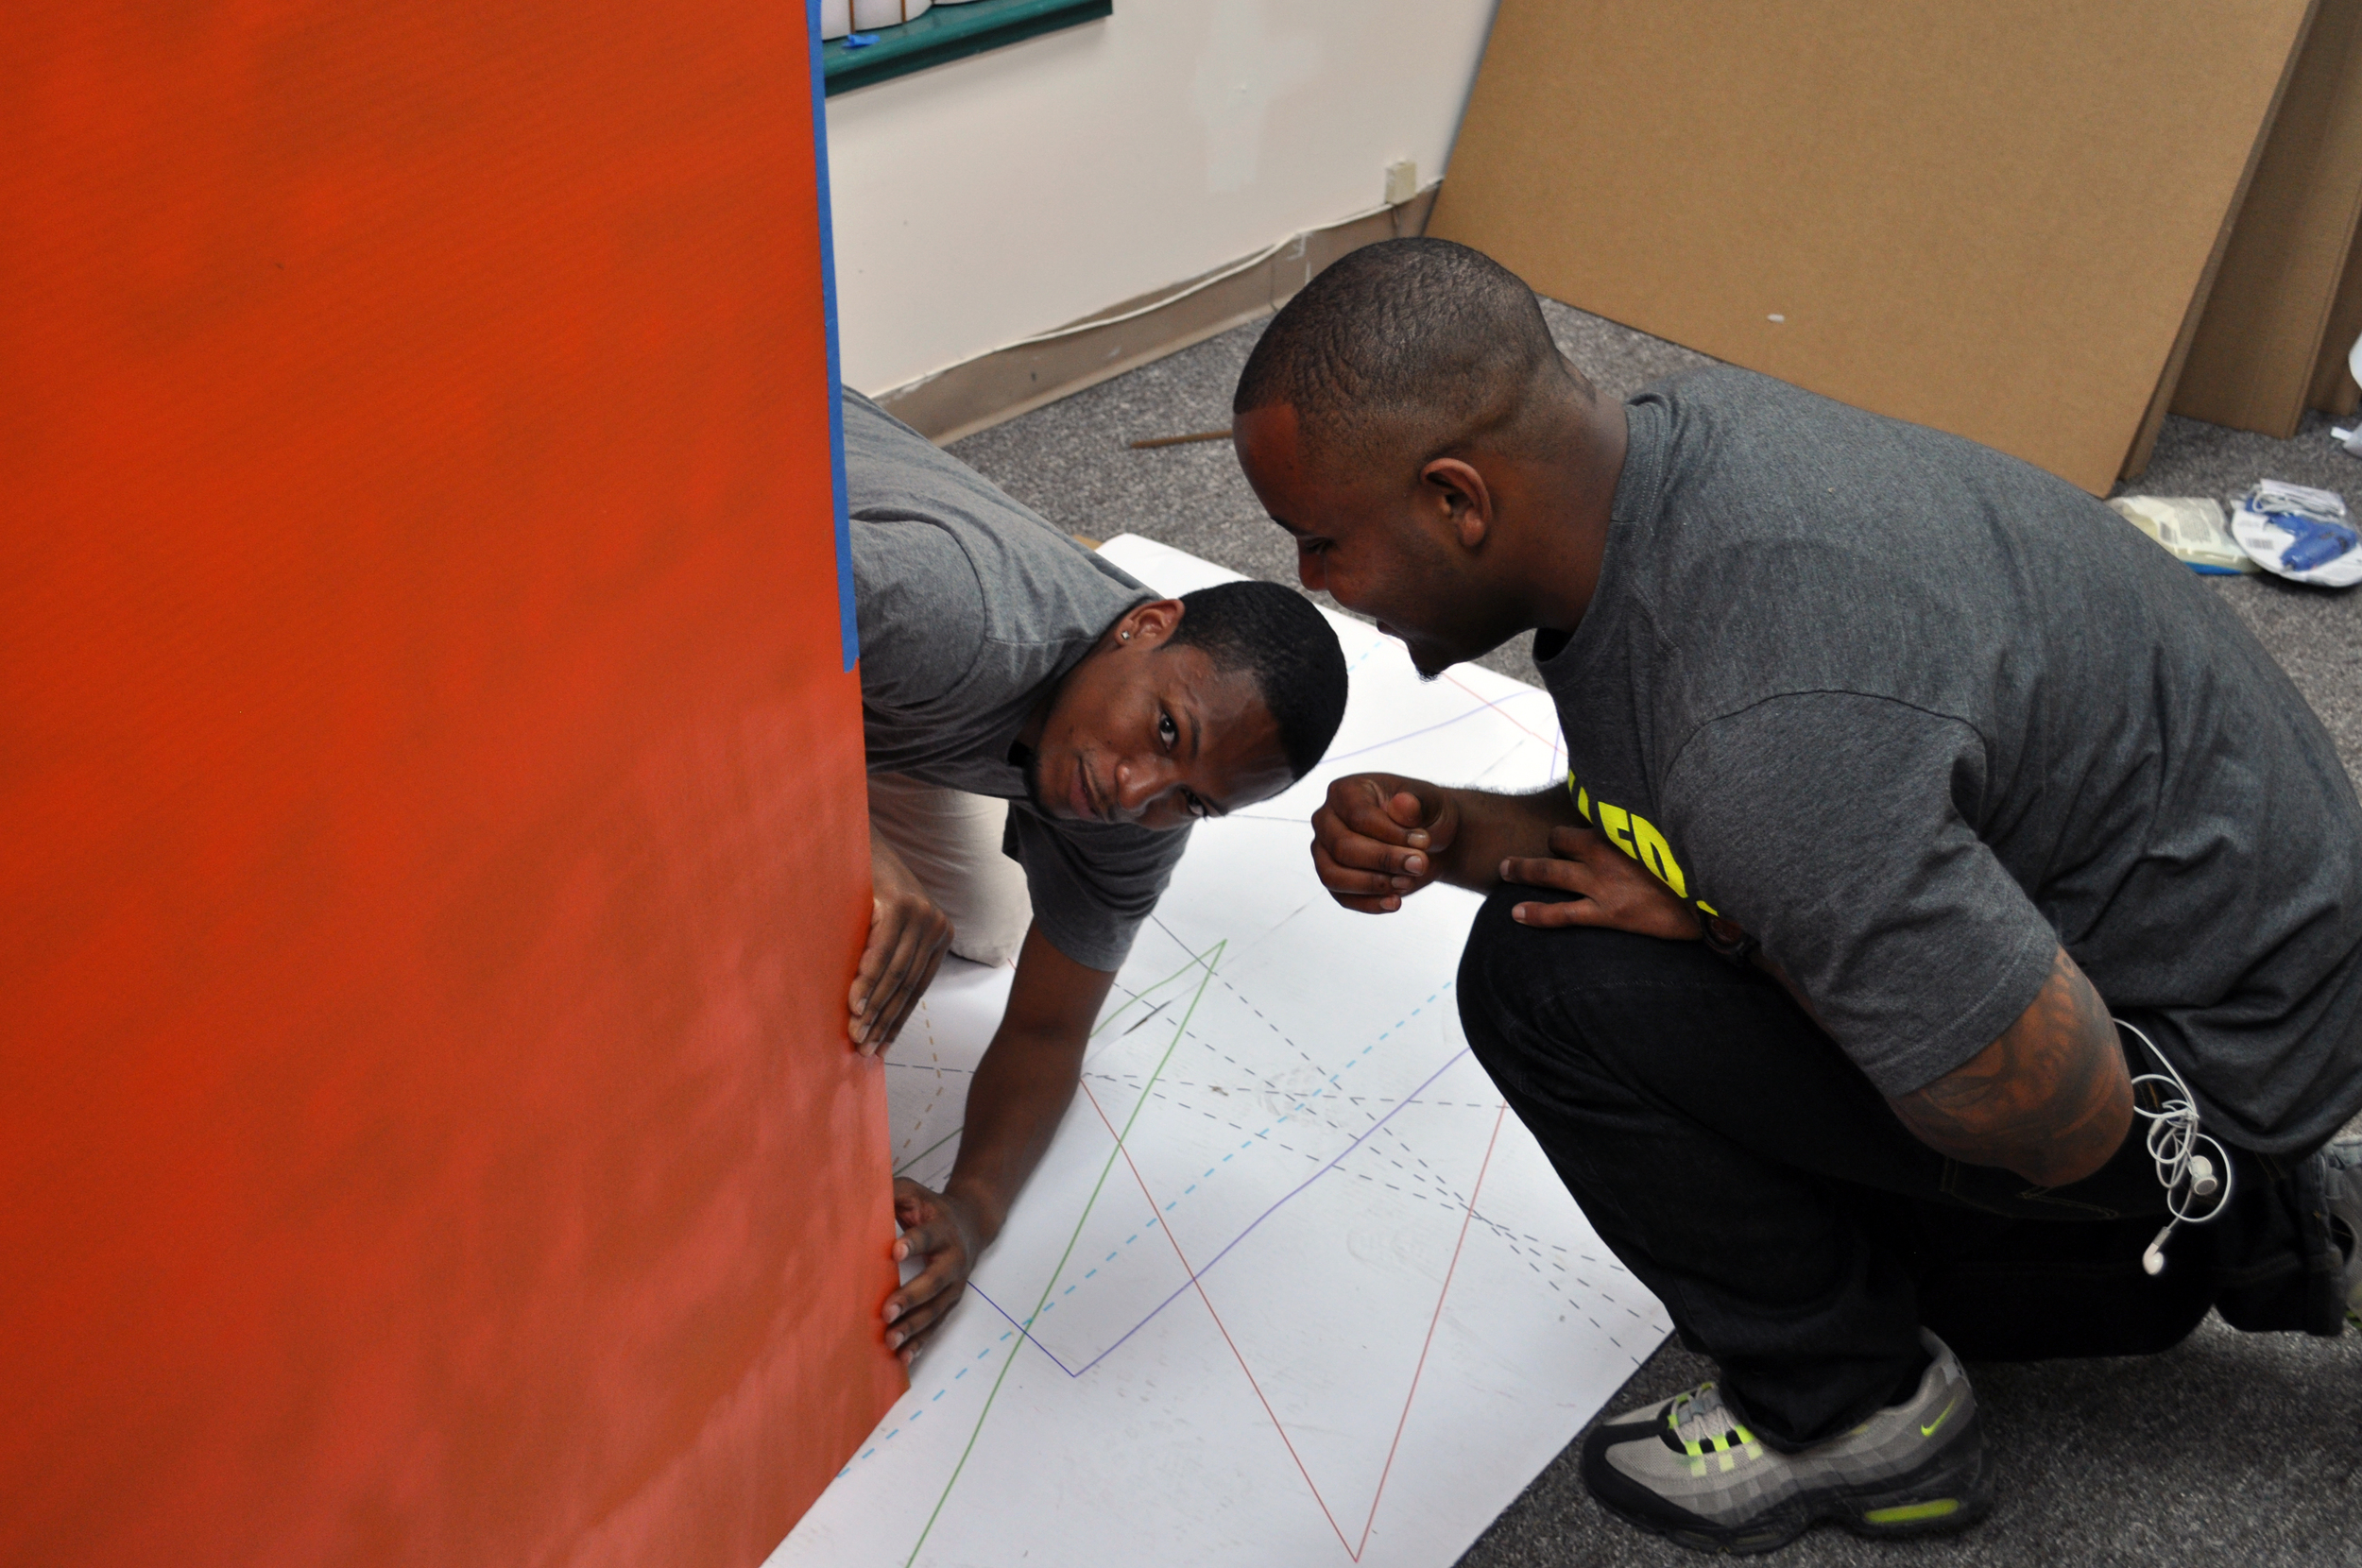 Germane and Chris assemble the first cardboard structure.